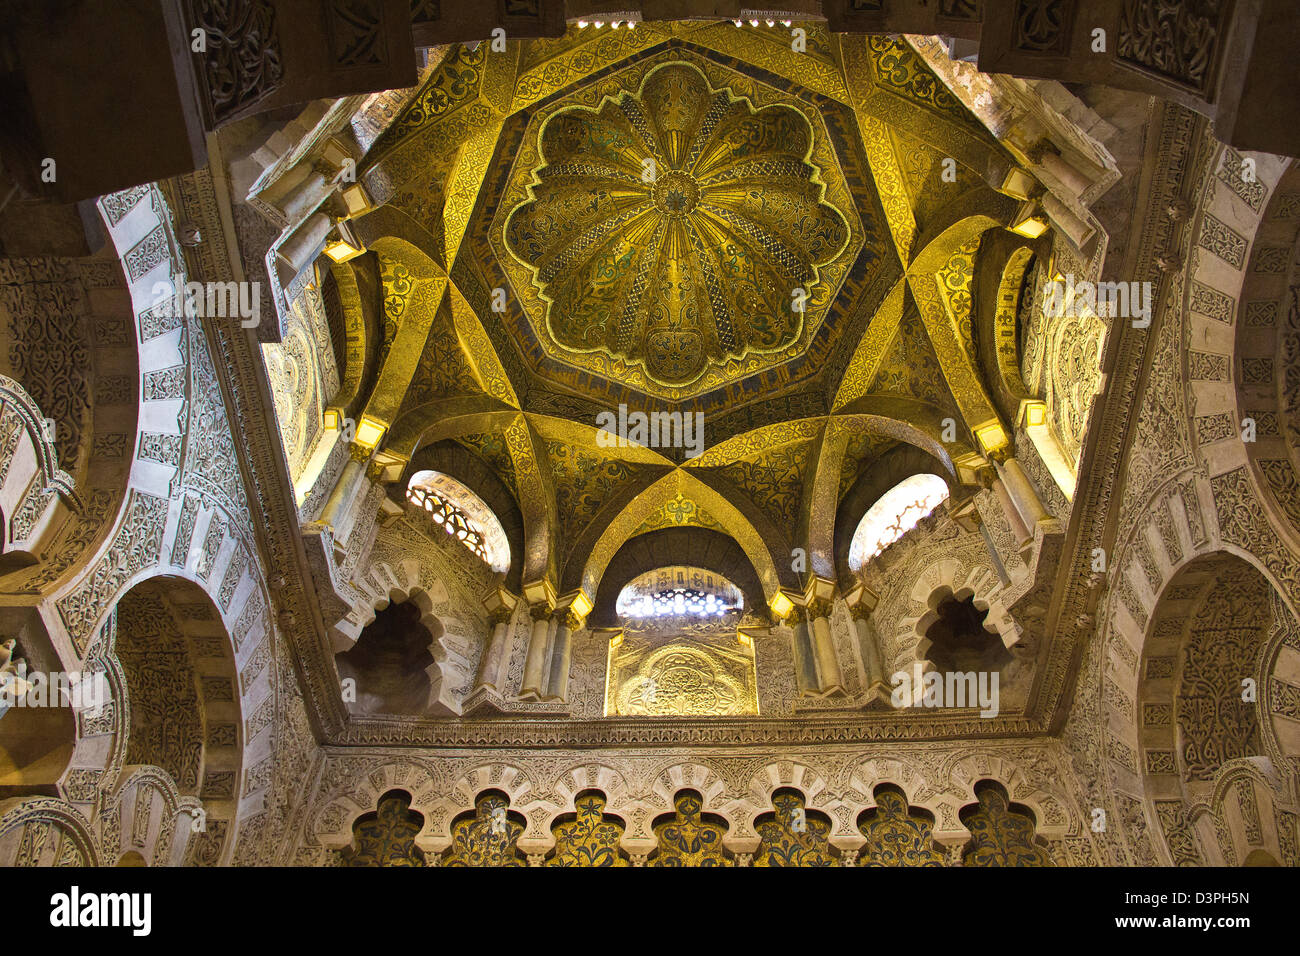 Interiors Alcazar Seville, Royal Palace, Gold roof, Spain Andalusia - Stock Image